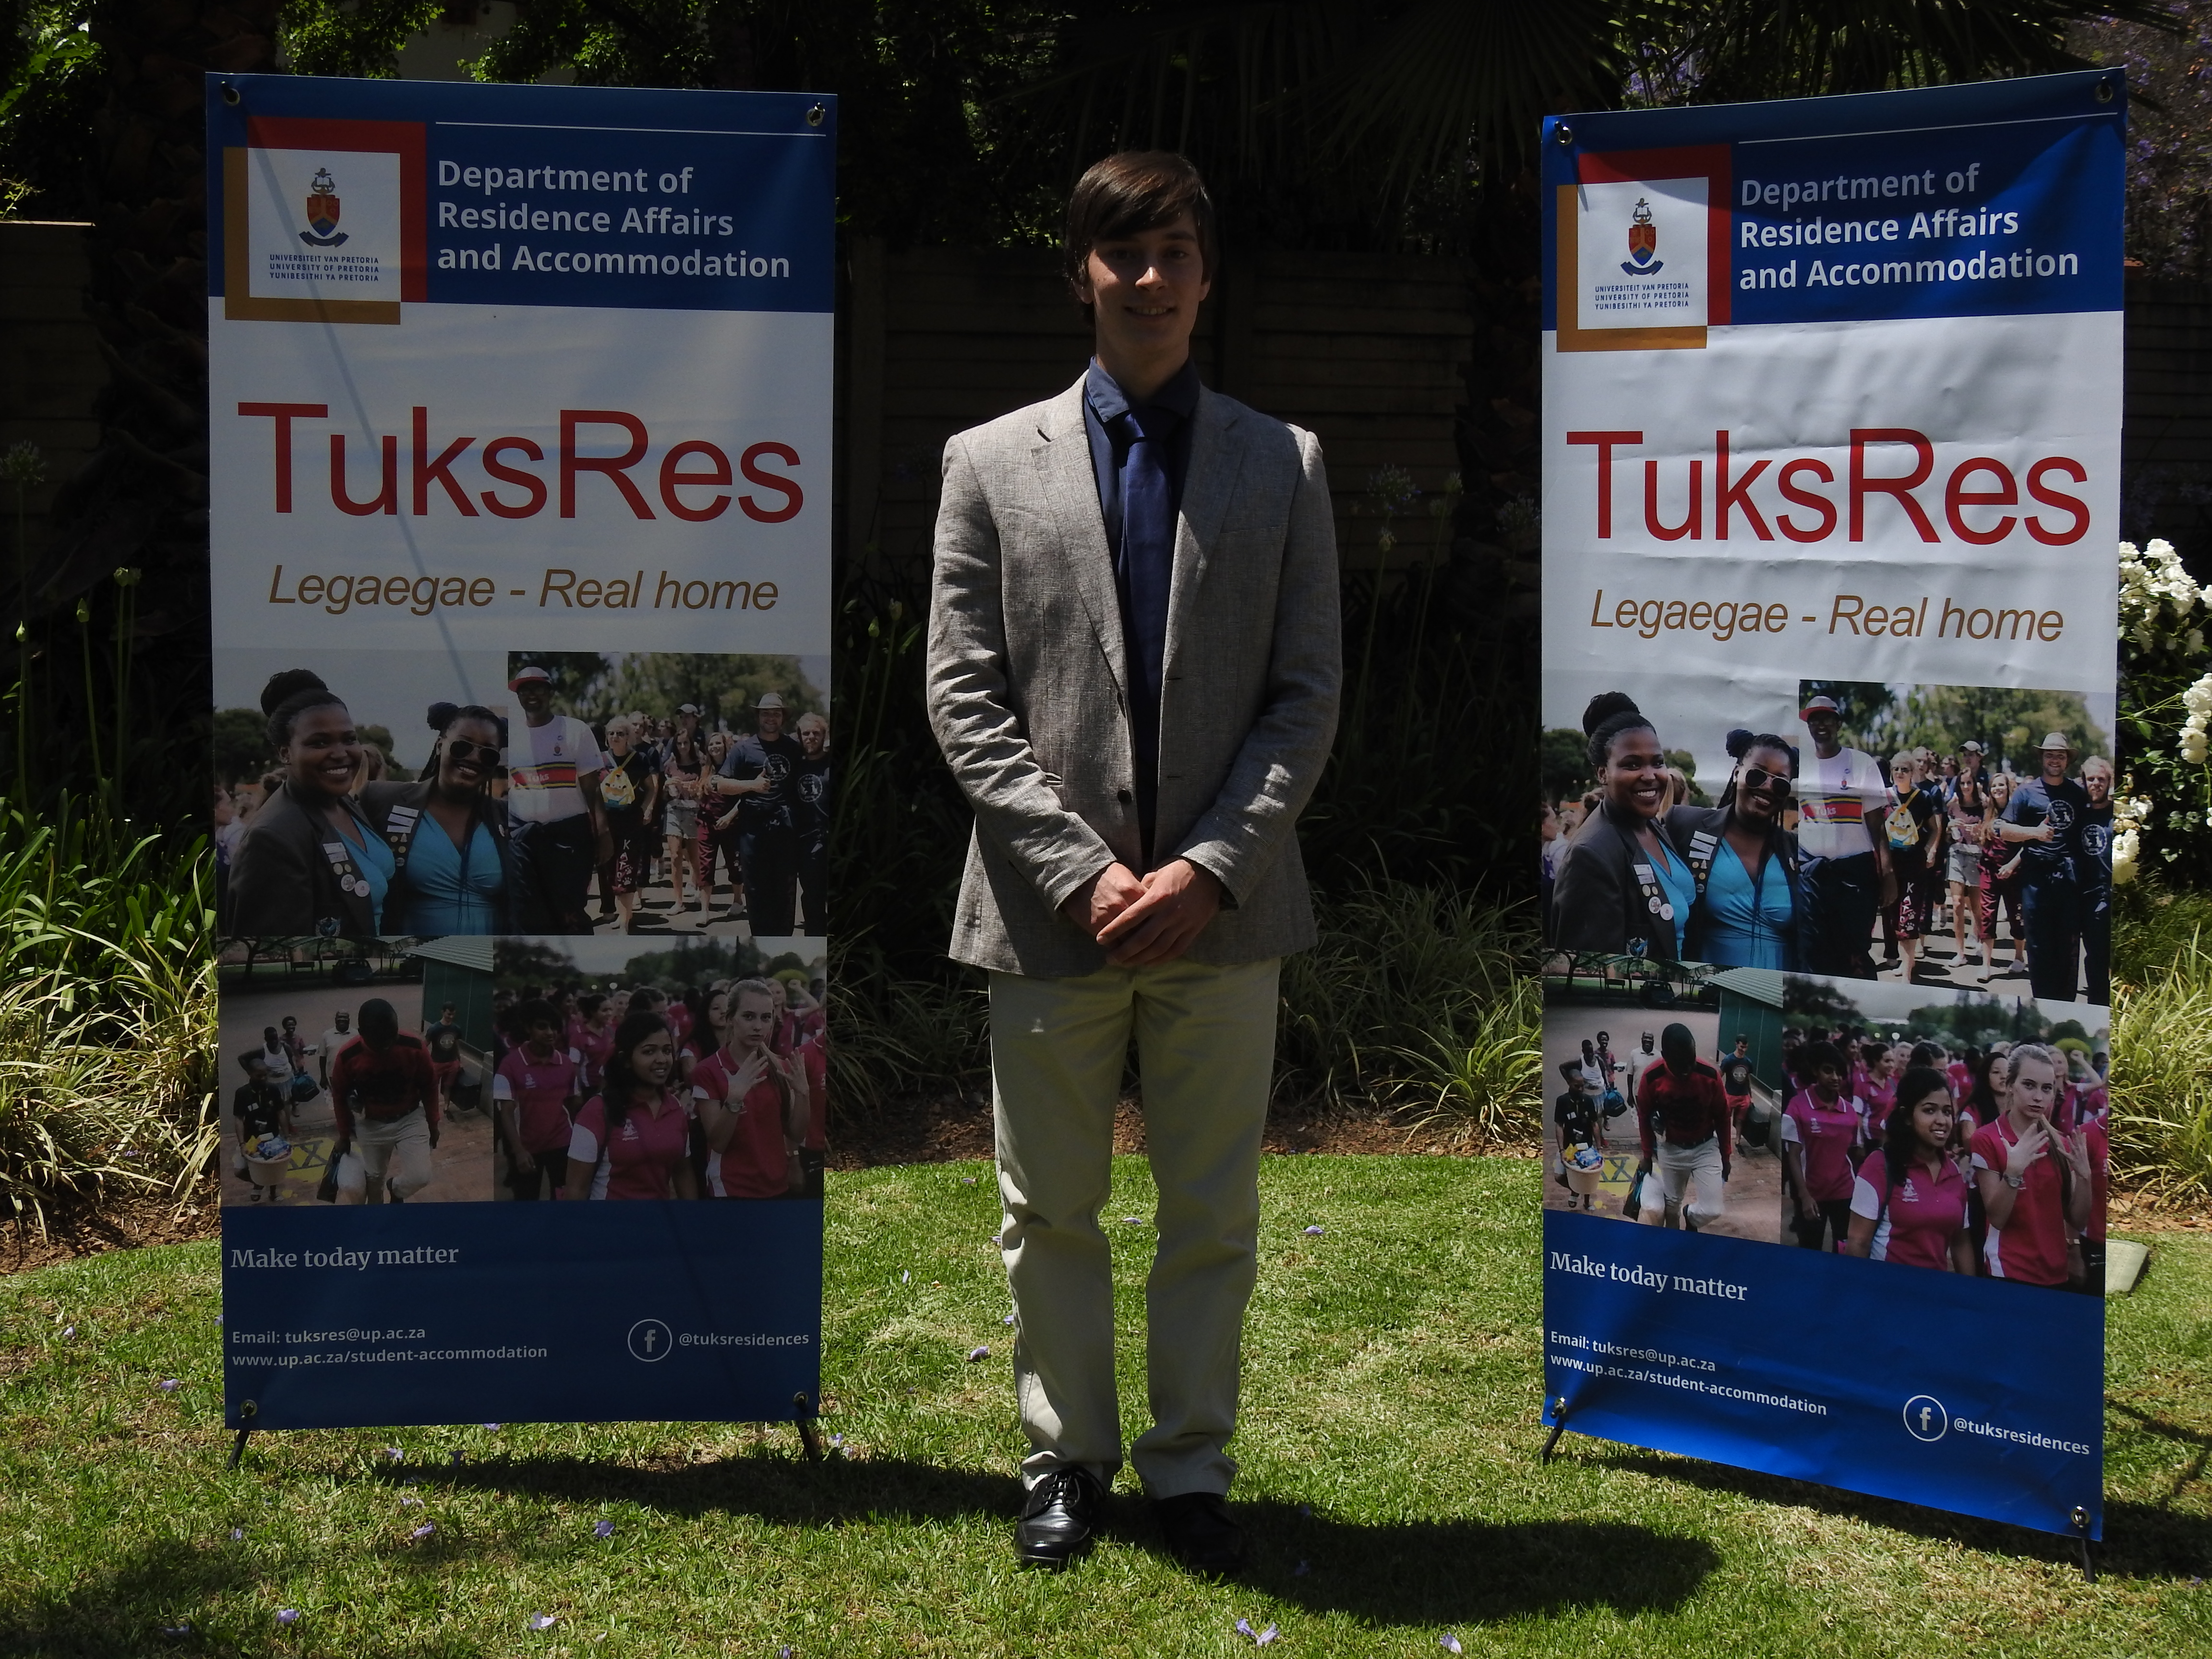 Up S Residence Affairs And Accommodation Hosts Tuksres Academic